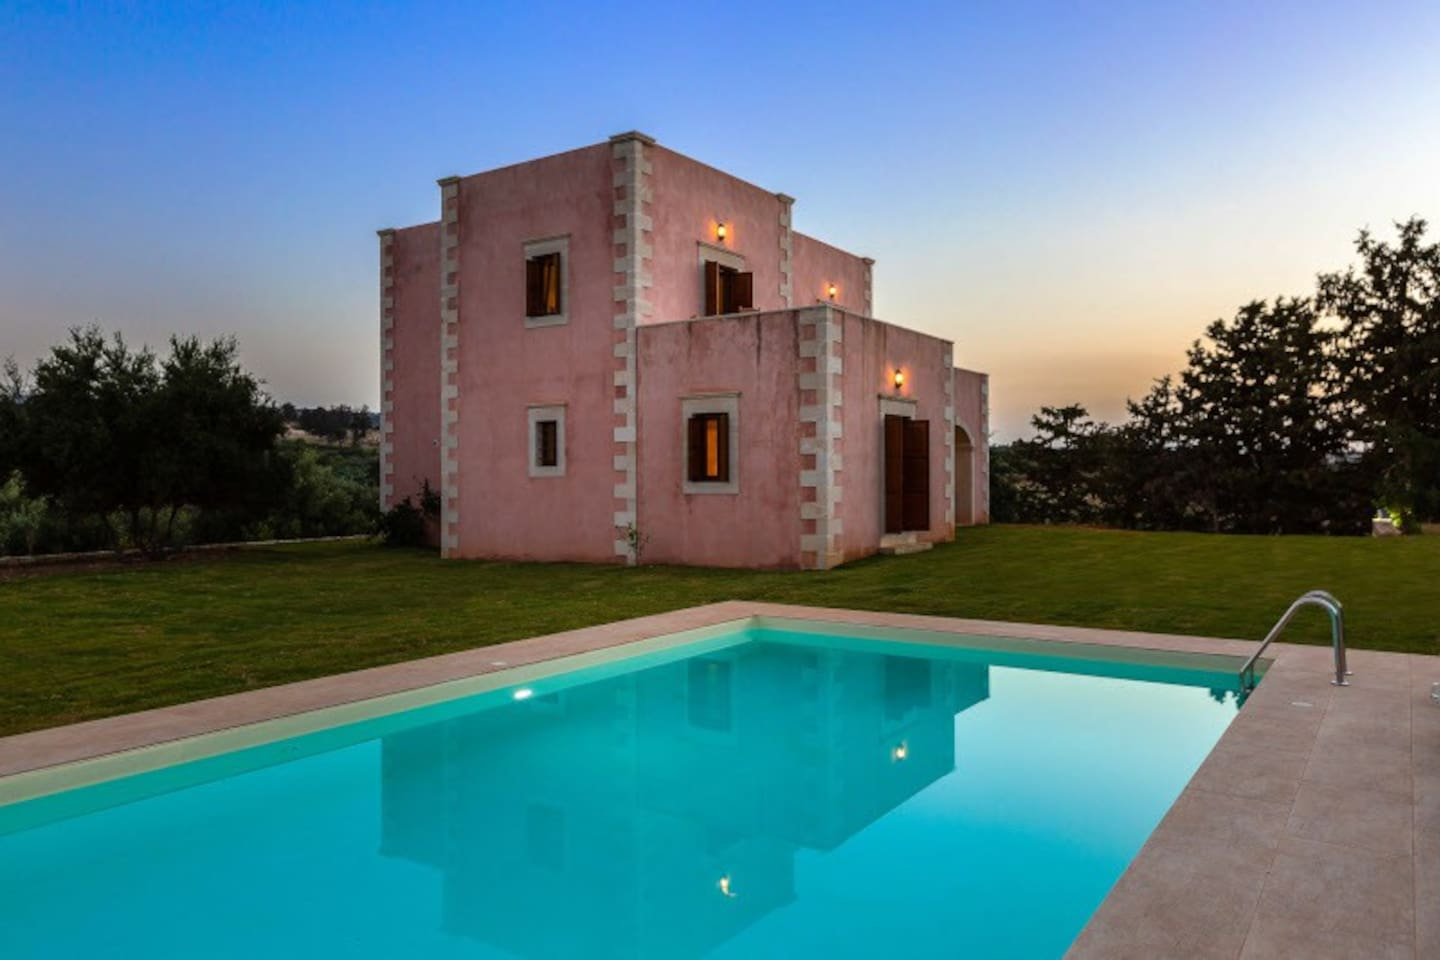 The villa combines the traditional Cretan architecture with Turkish-Venetian style...